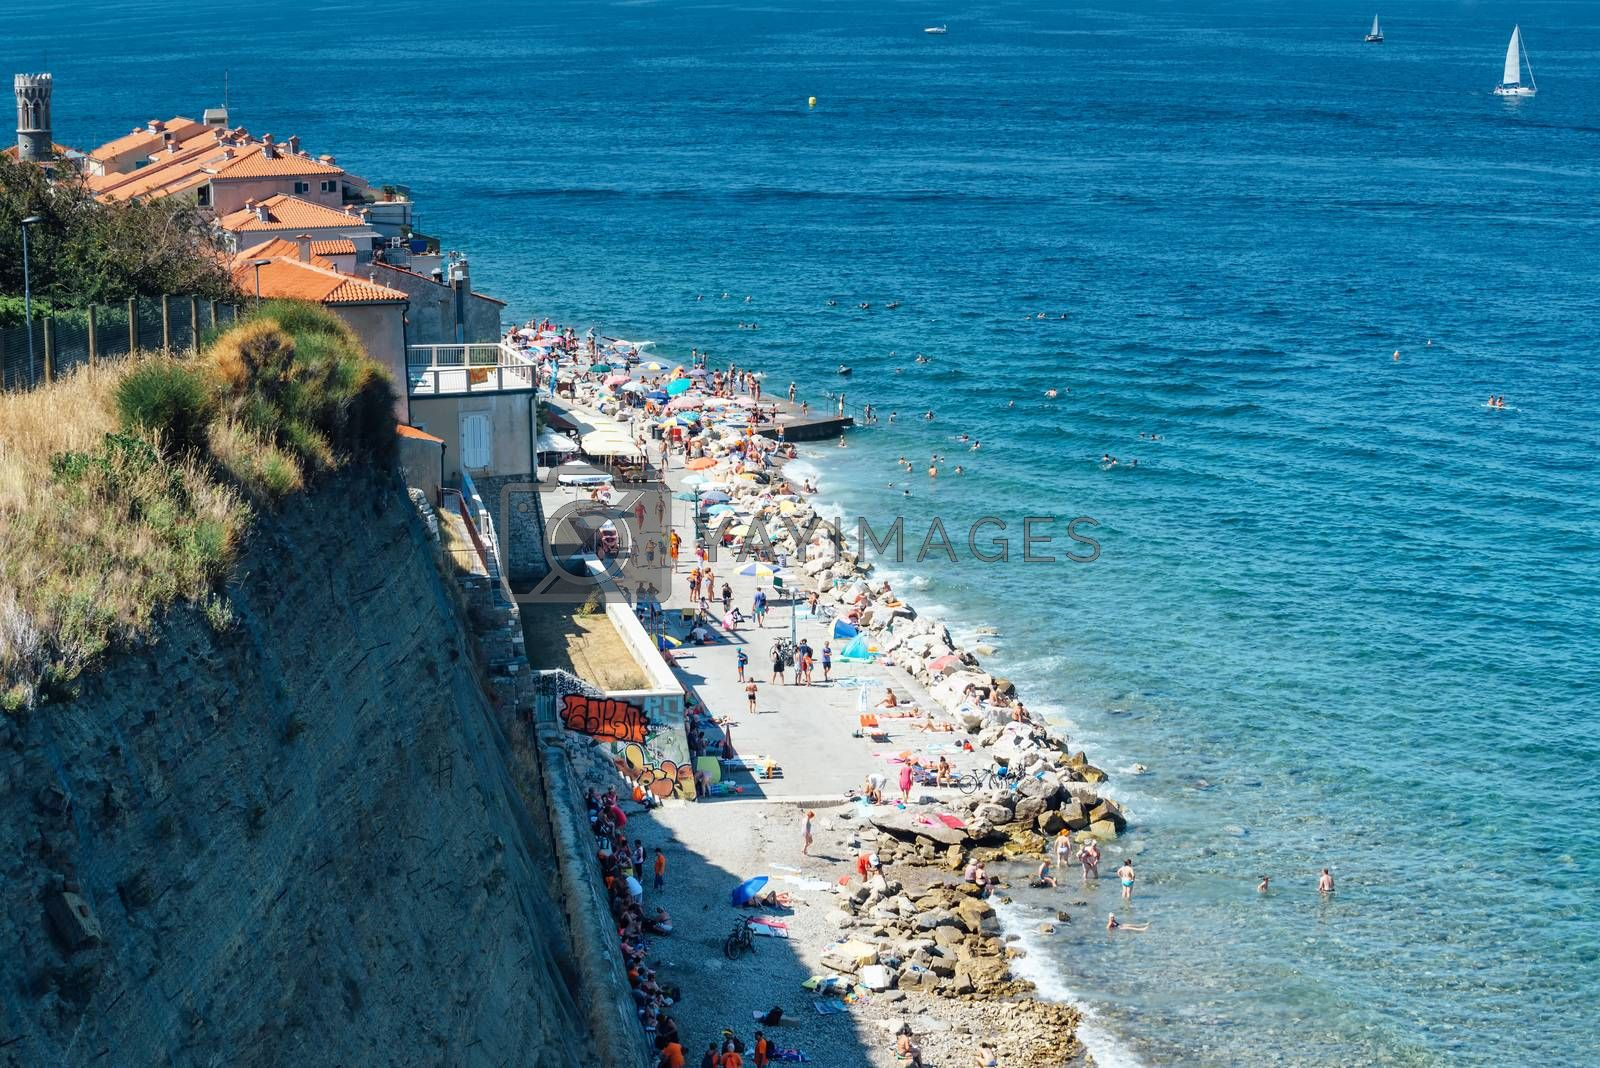 PIRAN, SLOVENIA - AUGUST 27. 2016: Unidentified people on beach in the pictoresque village of Piran on Slovenian Adriatic sea